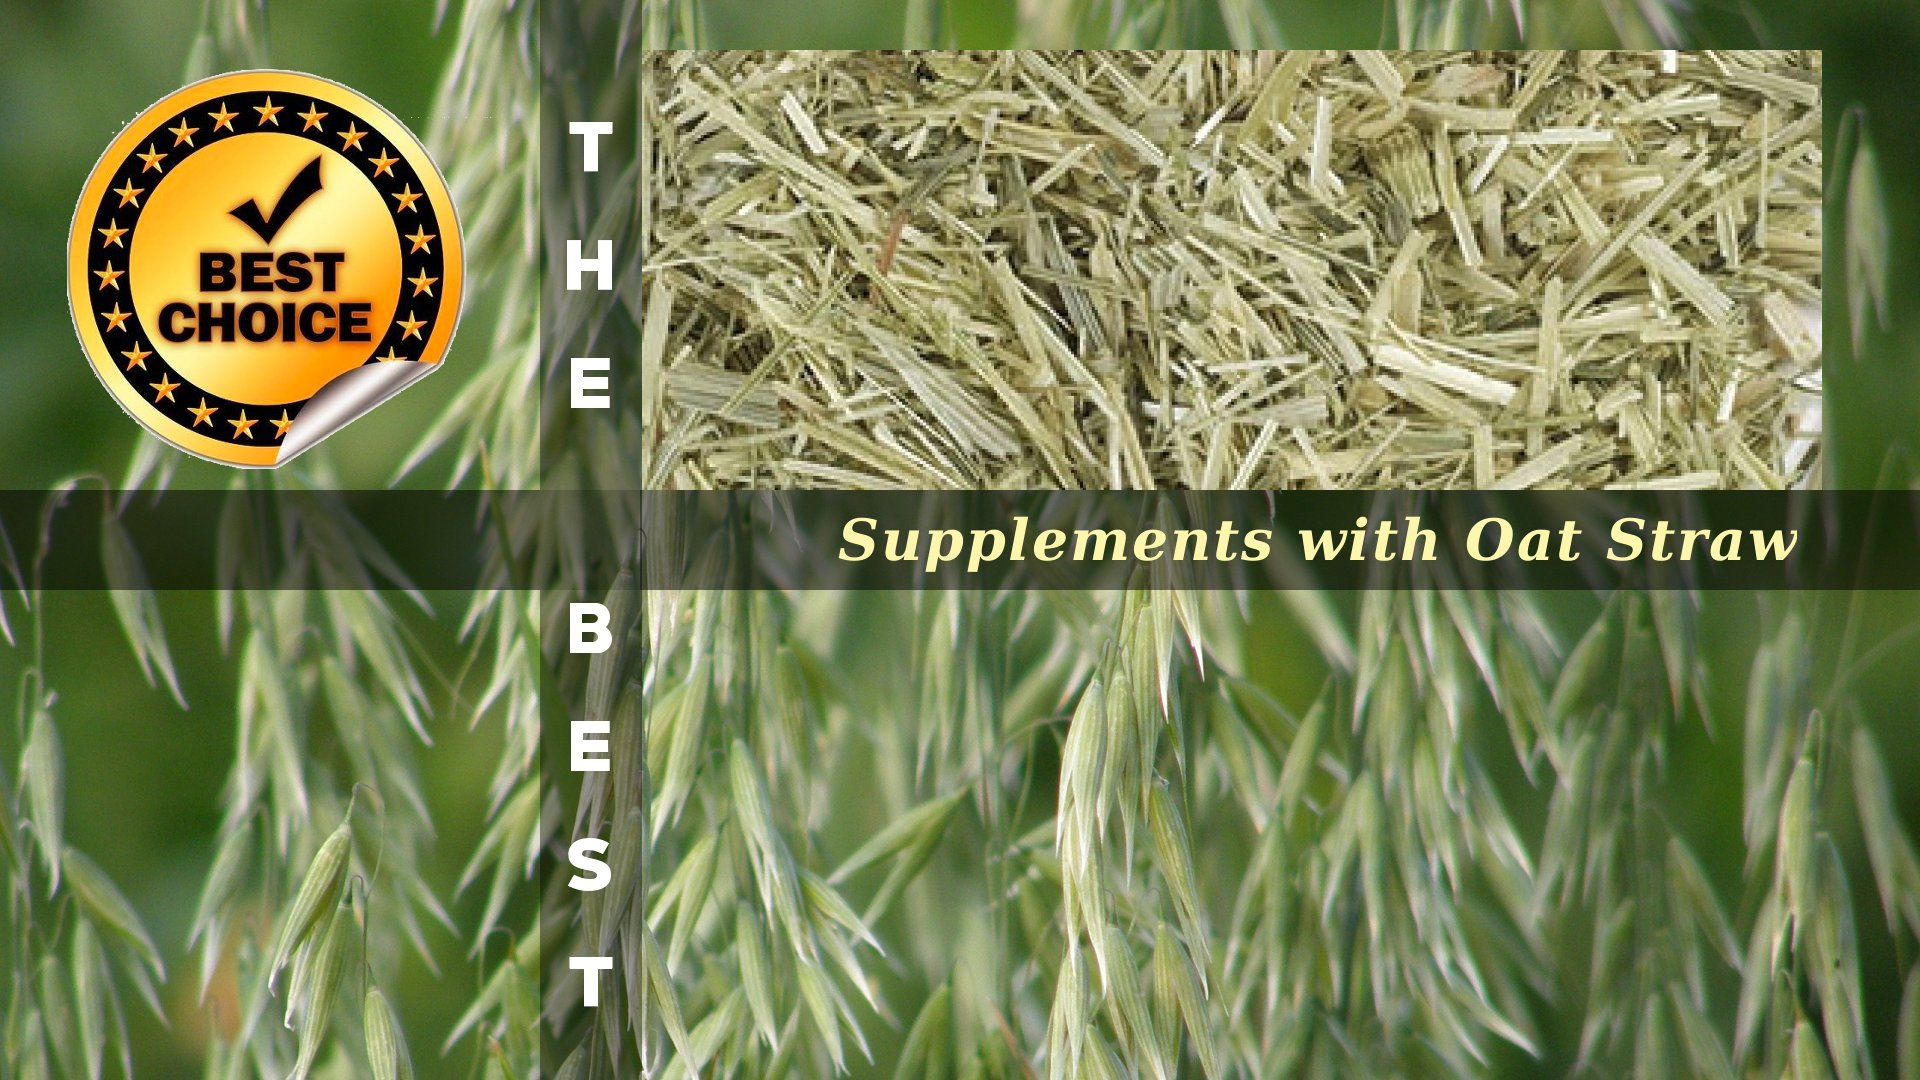 The Supplements with Oat Straw